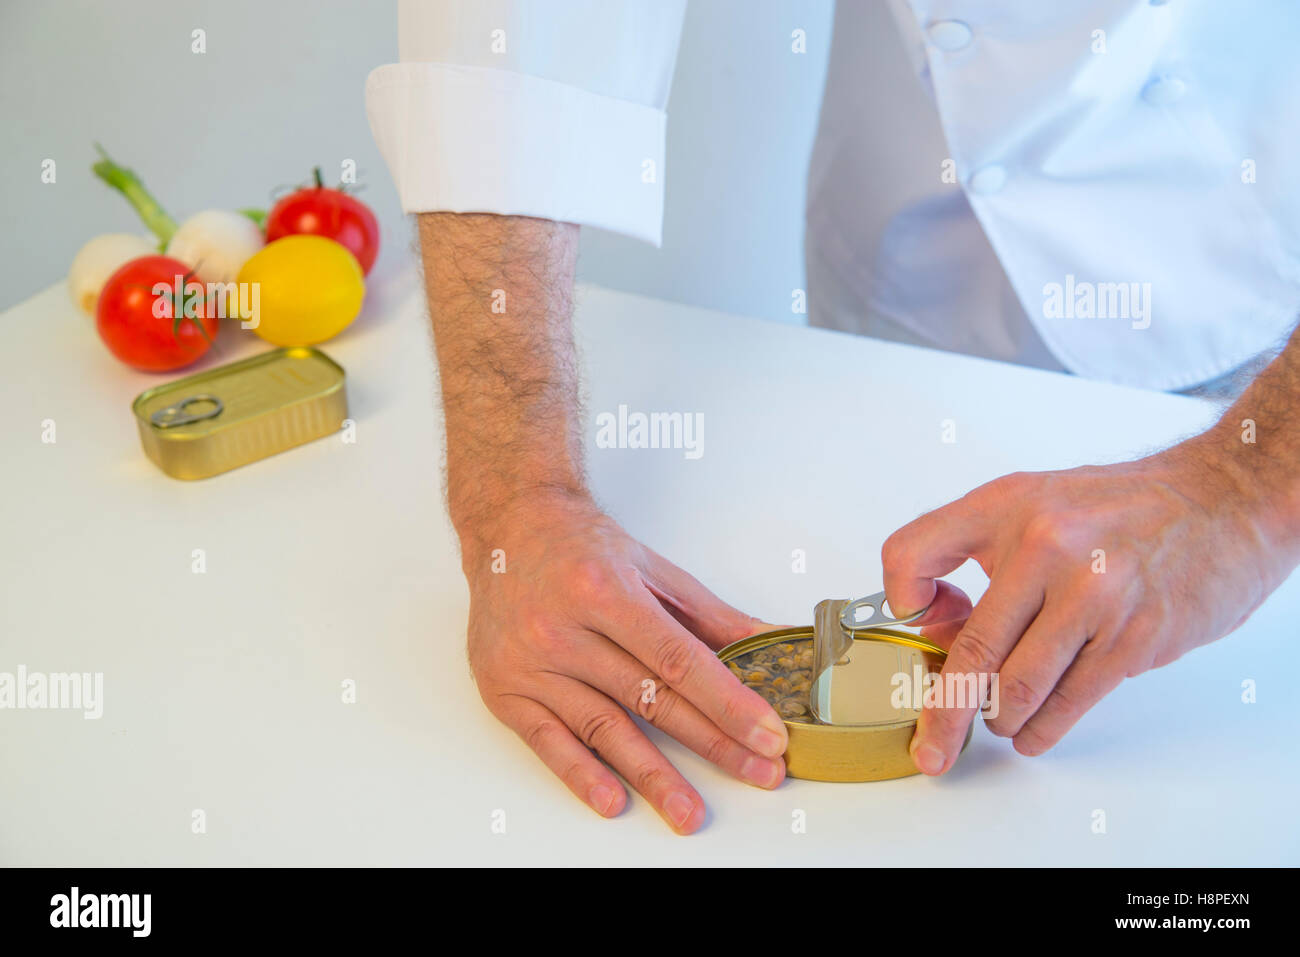 Chef opening a can. - Stock Image